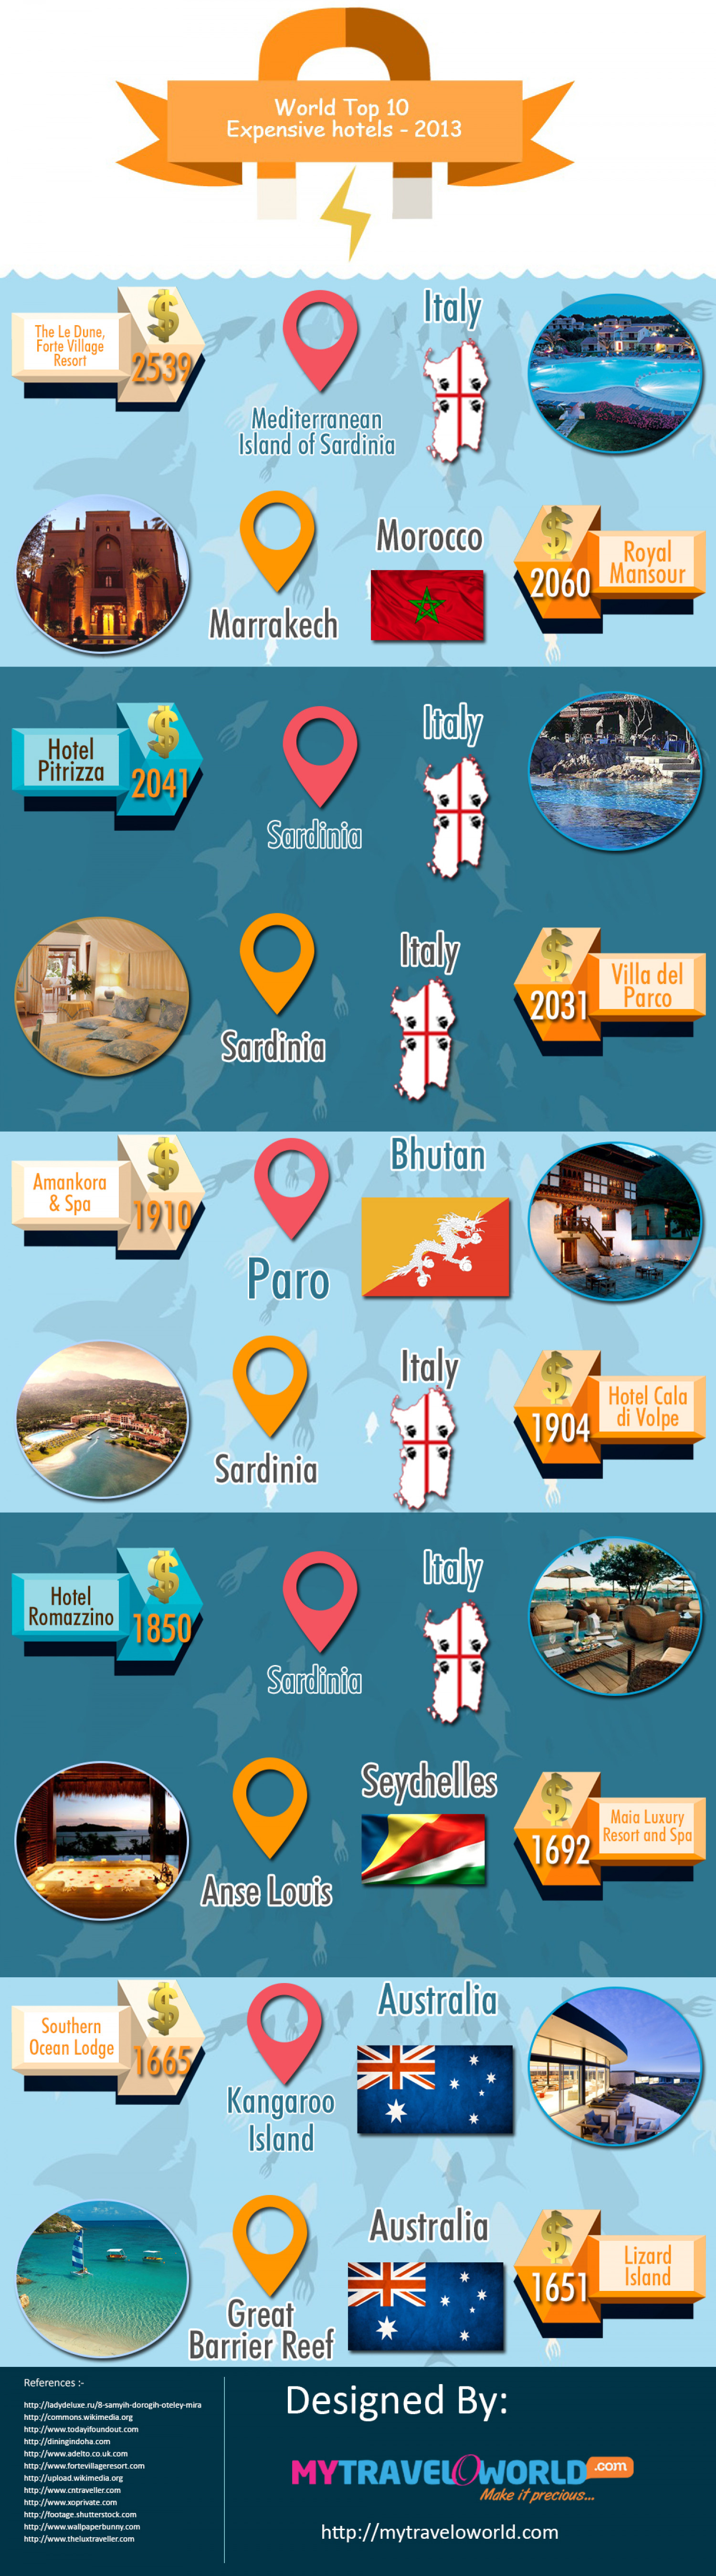 World Top 10 Expensive Hotels - 2013 Infographic